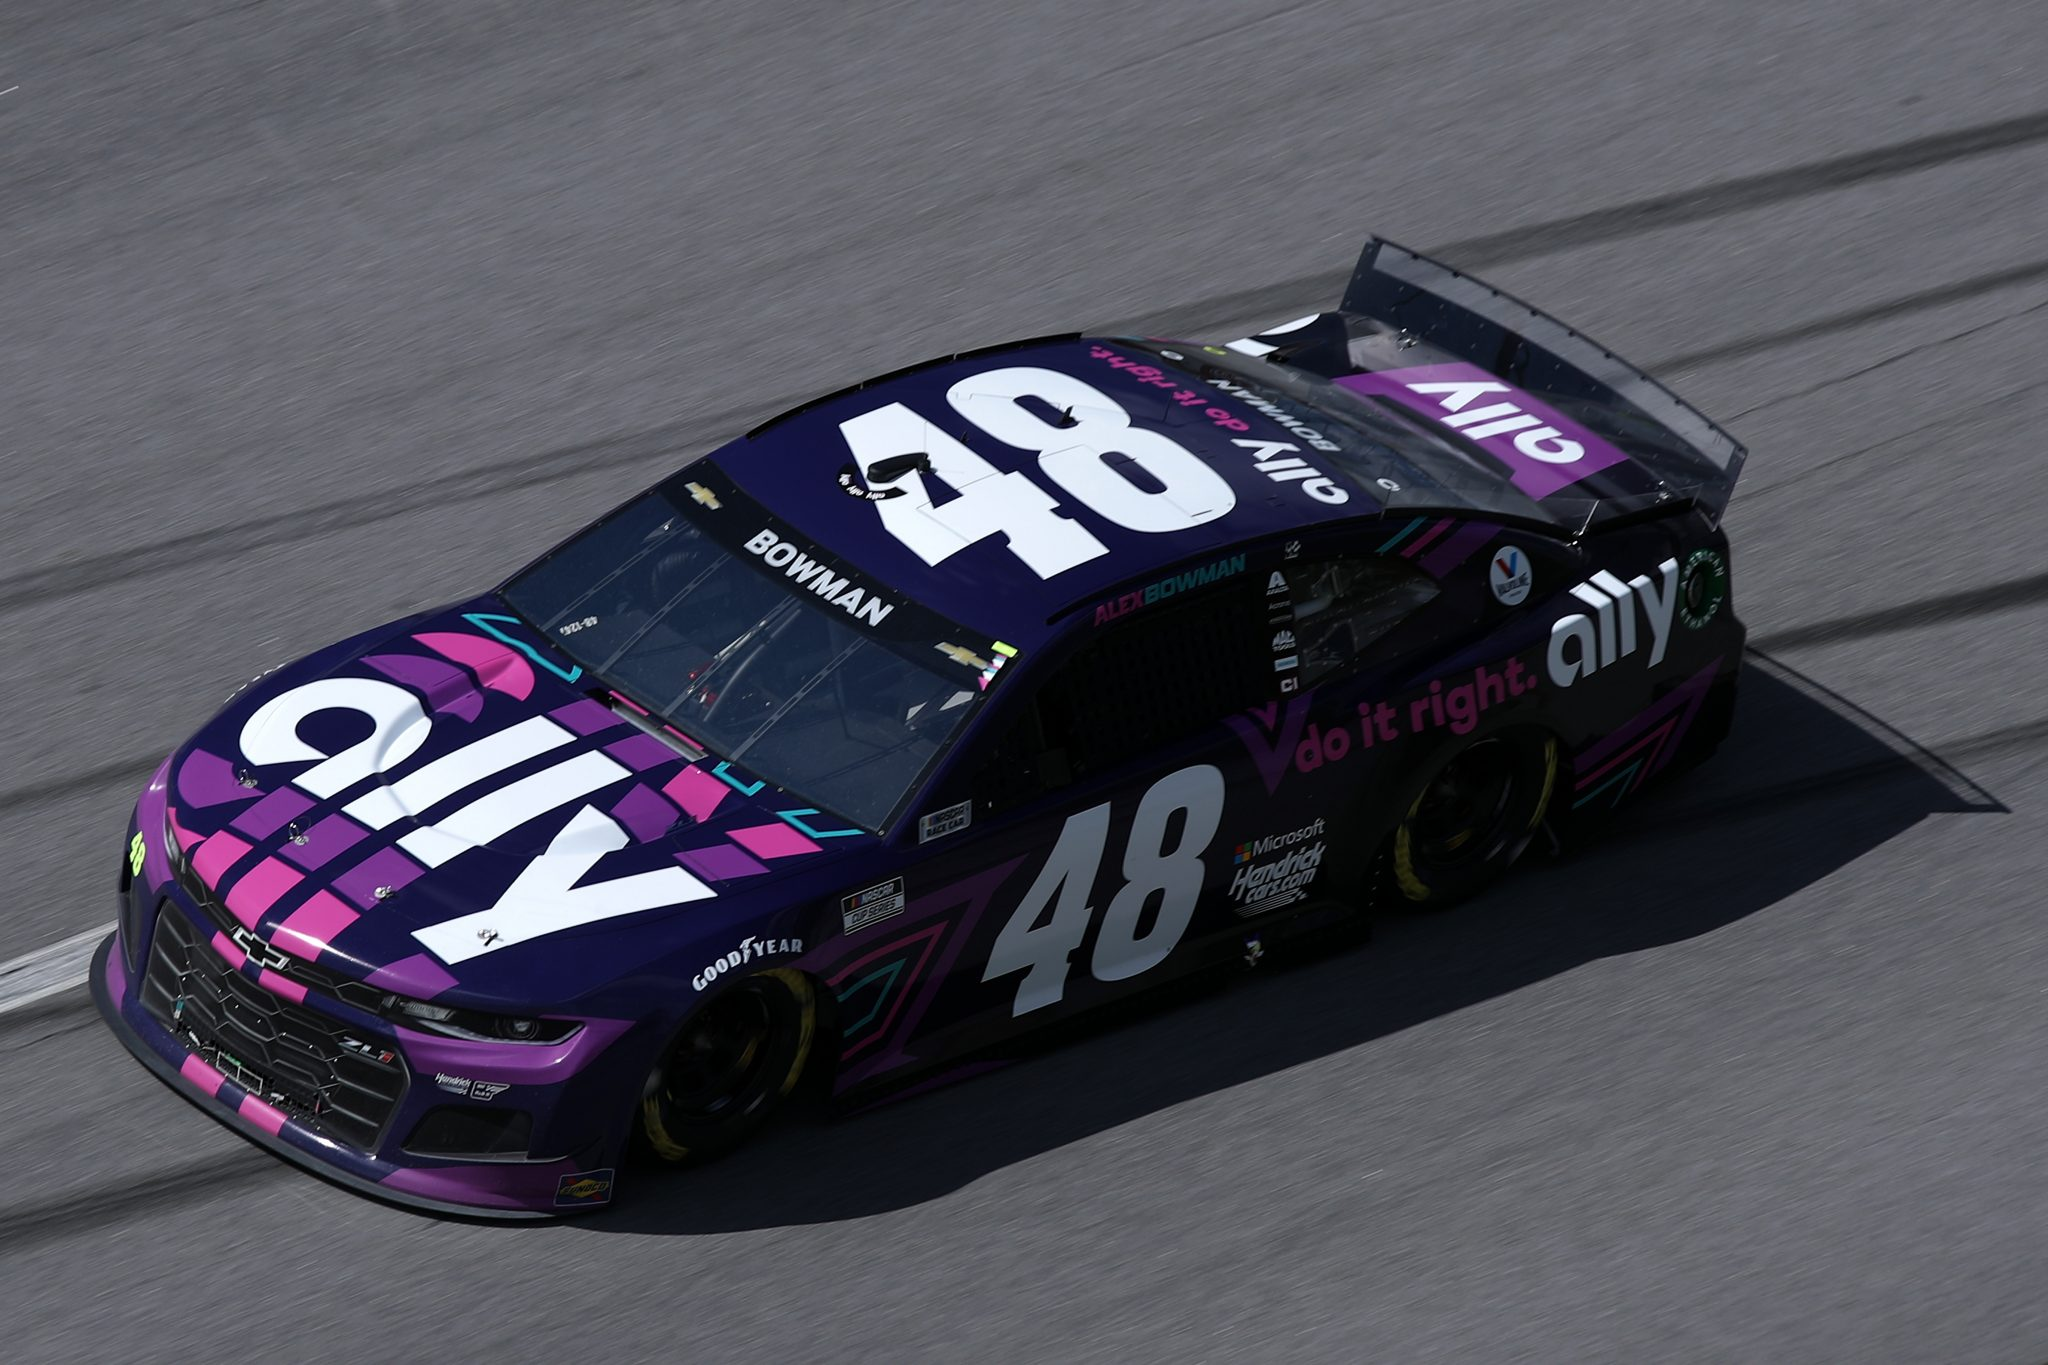 TALLADEGA, ALABAMA - APRIL 25: Alex Bowman, driver of the #48 Ally Chevrolet, drives during the NASCAR Cup Series GEICO 500 at Talladega Superspeedway on April 25, 2021 in Talladega, Alabama. (Photo by Sean Gardner/Getty Images) | Getty Images